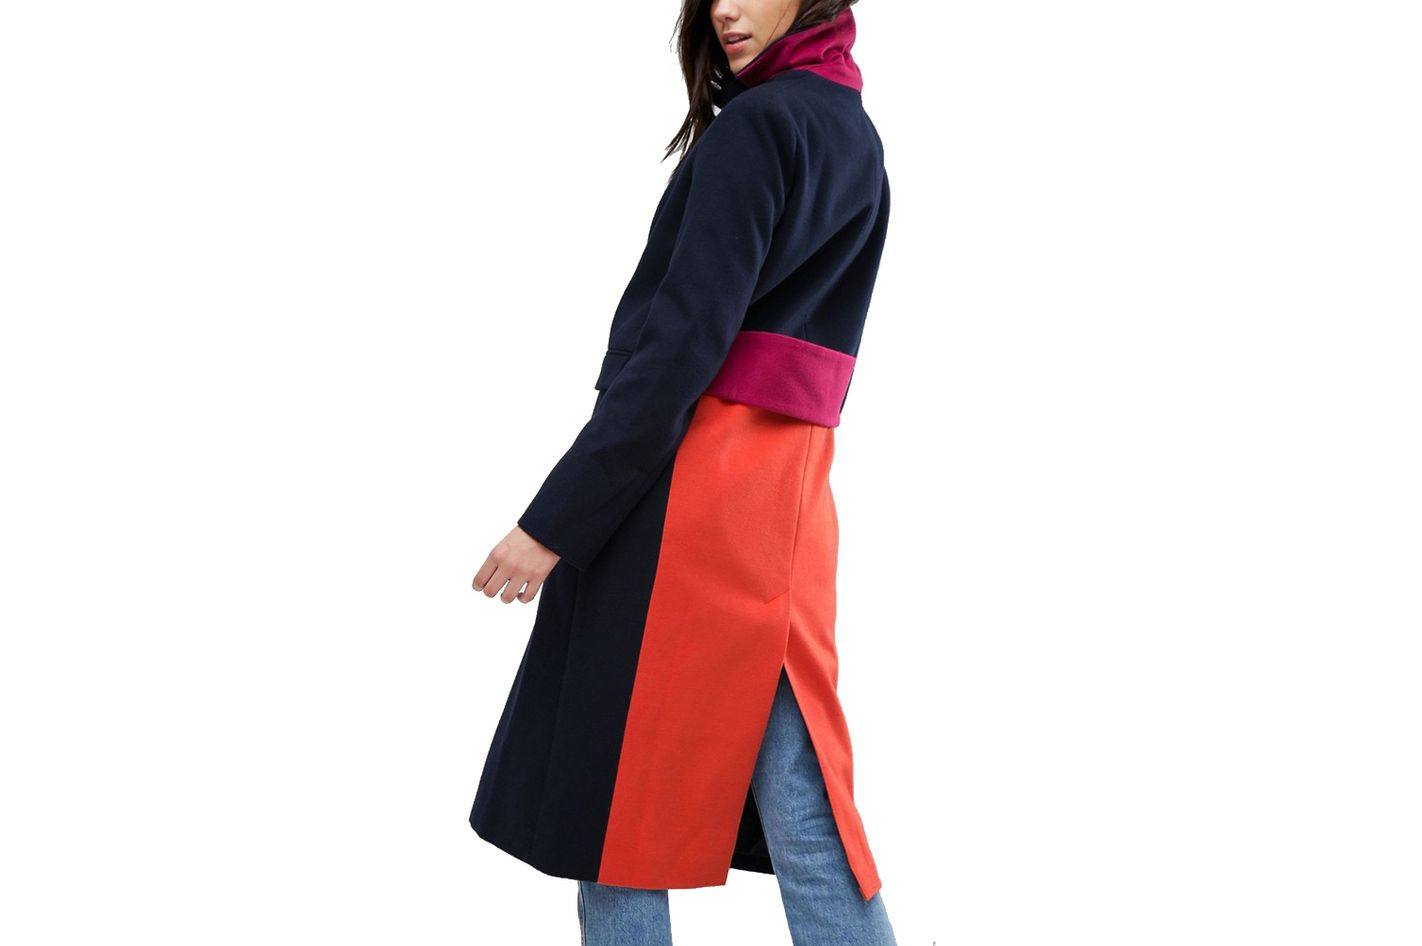 ASOS Color Block Coat